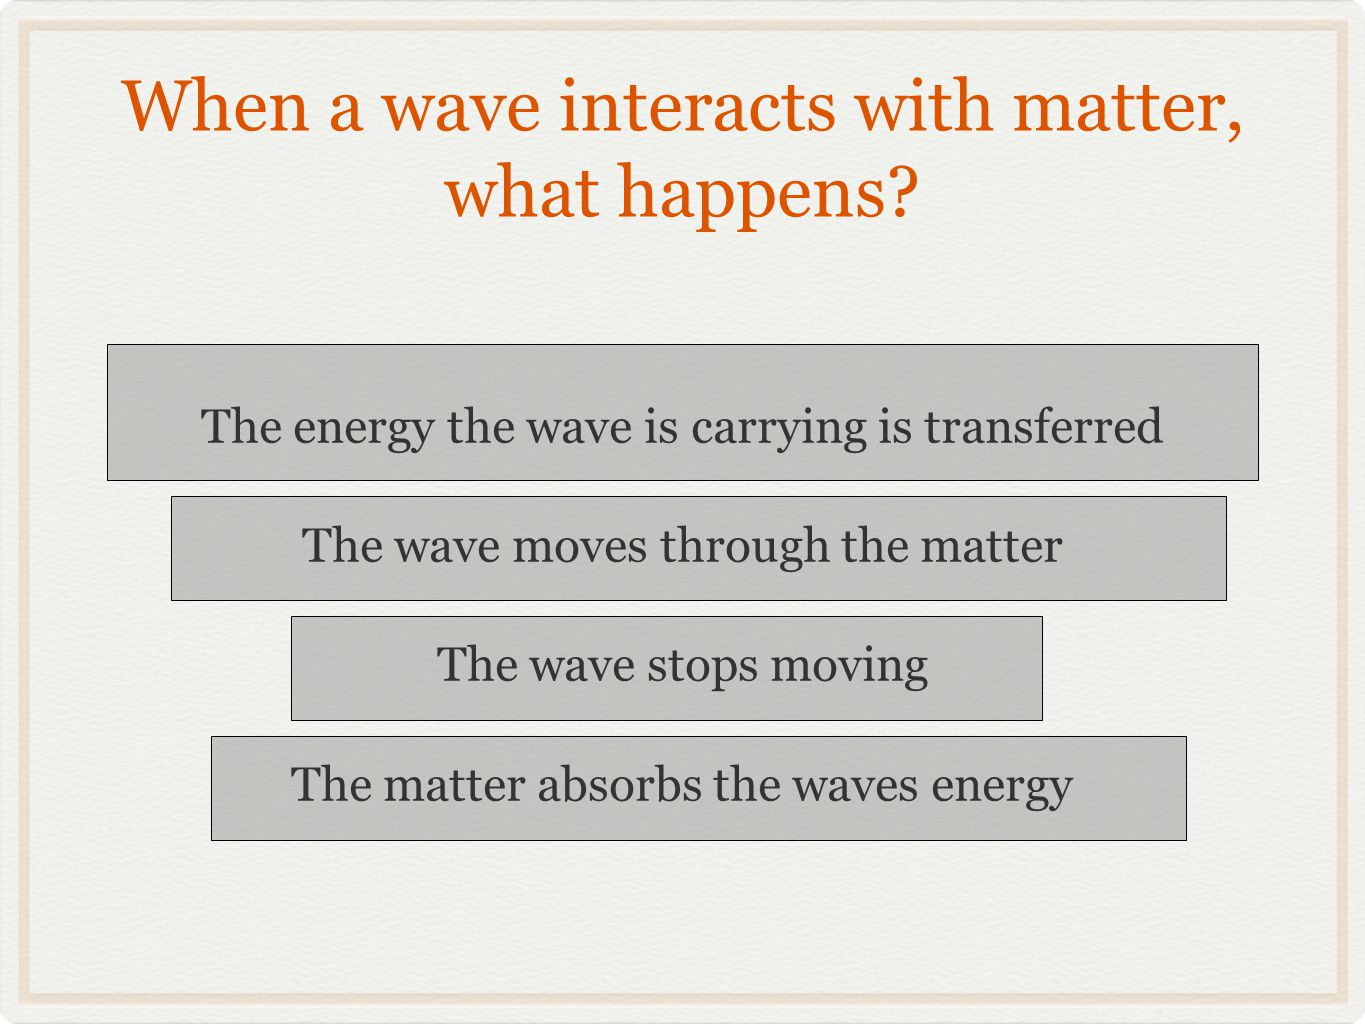 When a wave interacts with matter, what happens